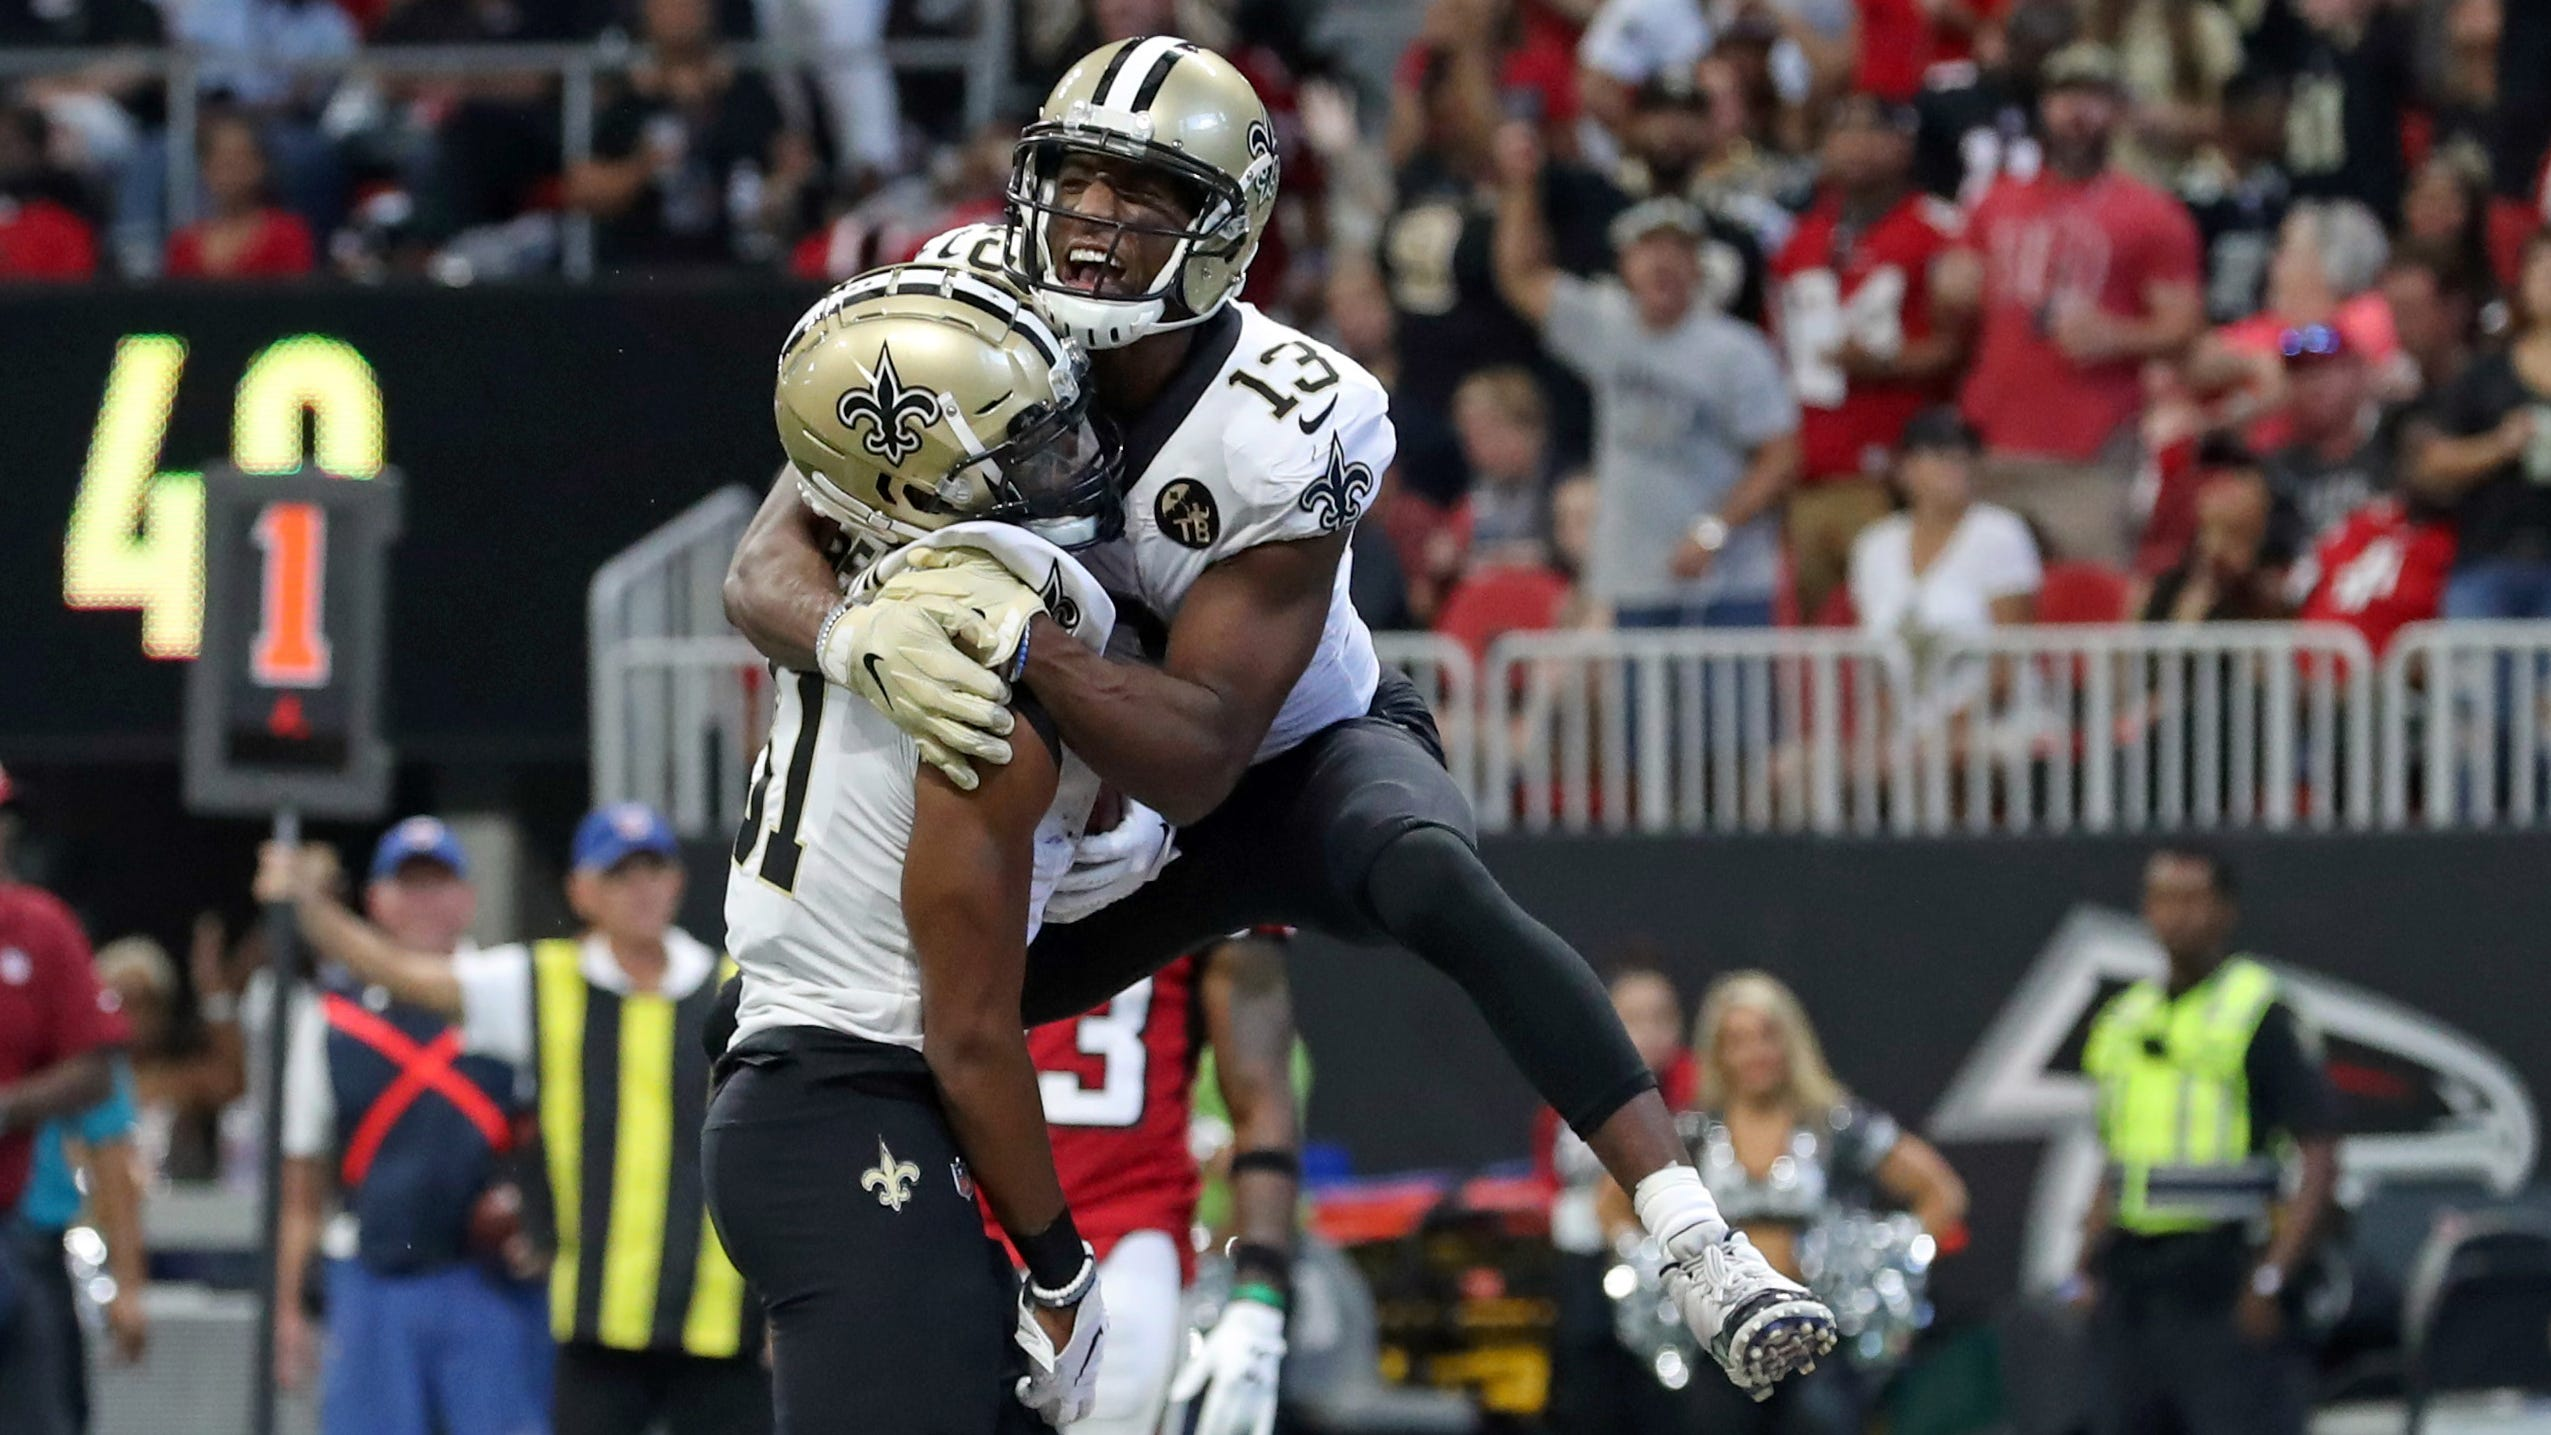 Saints' overtime victory over Falcons encouraging, but far from perfect